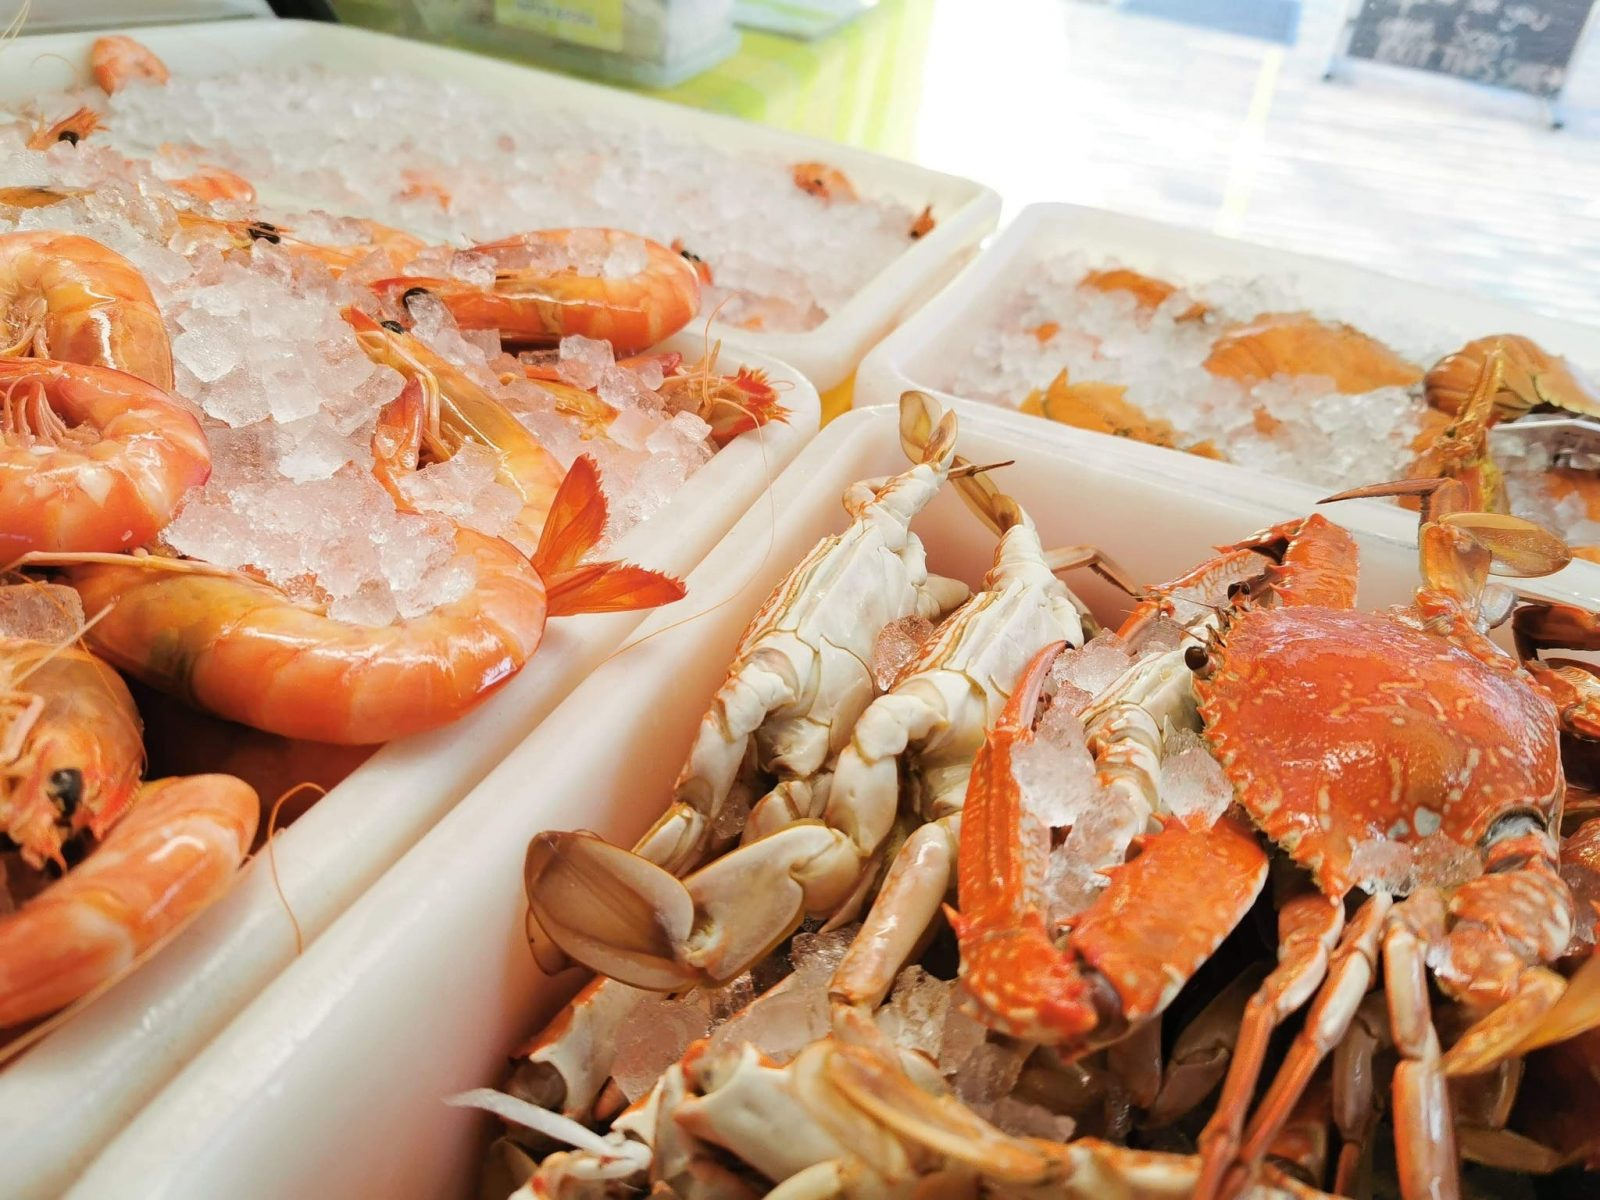 A range of our local trawler's catch of prawns, bugs and sand crabs.